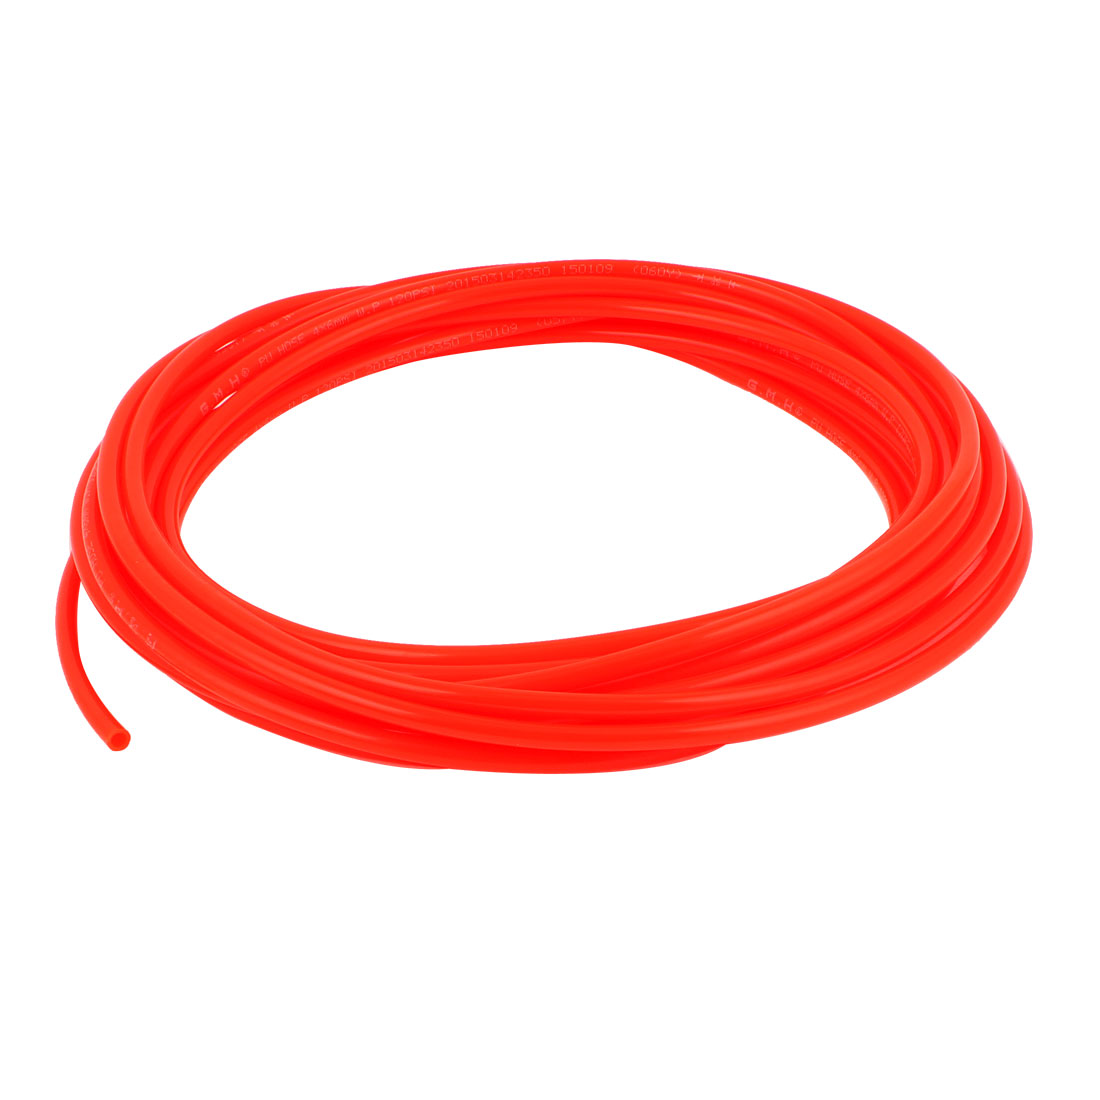 6mm x 4mm Fleaxible PU Tube Pneumatic Polyurethane Hose 9.5M Long Orange